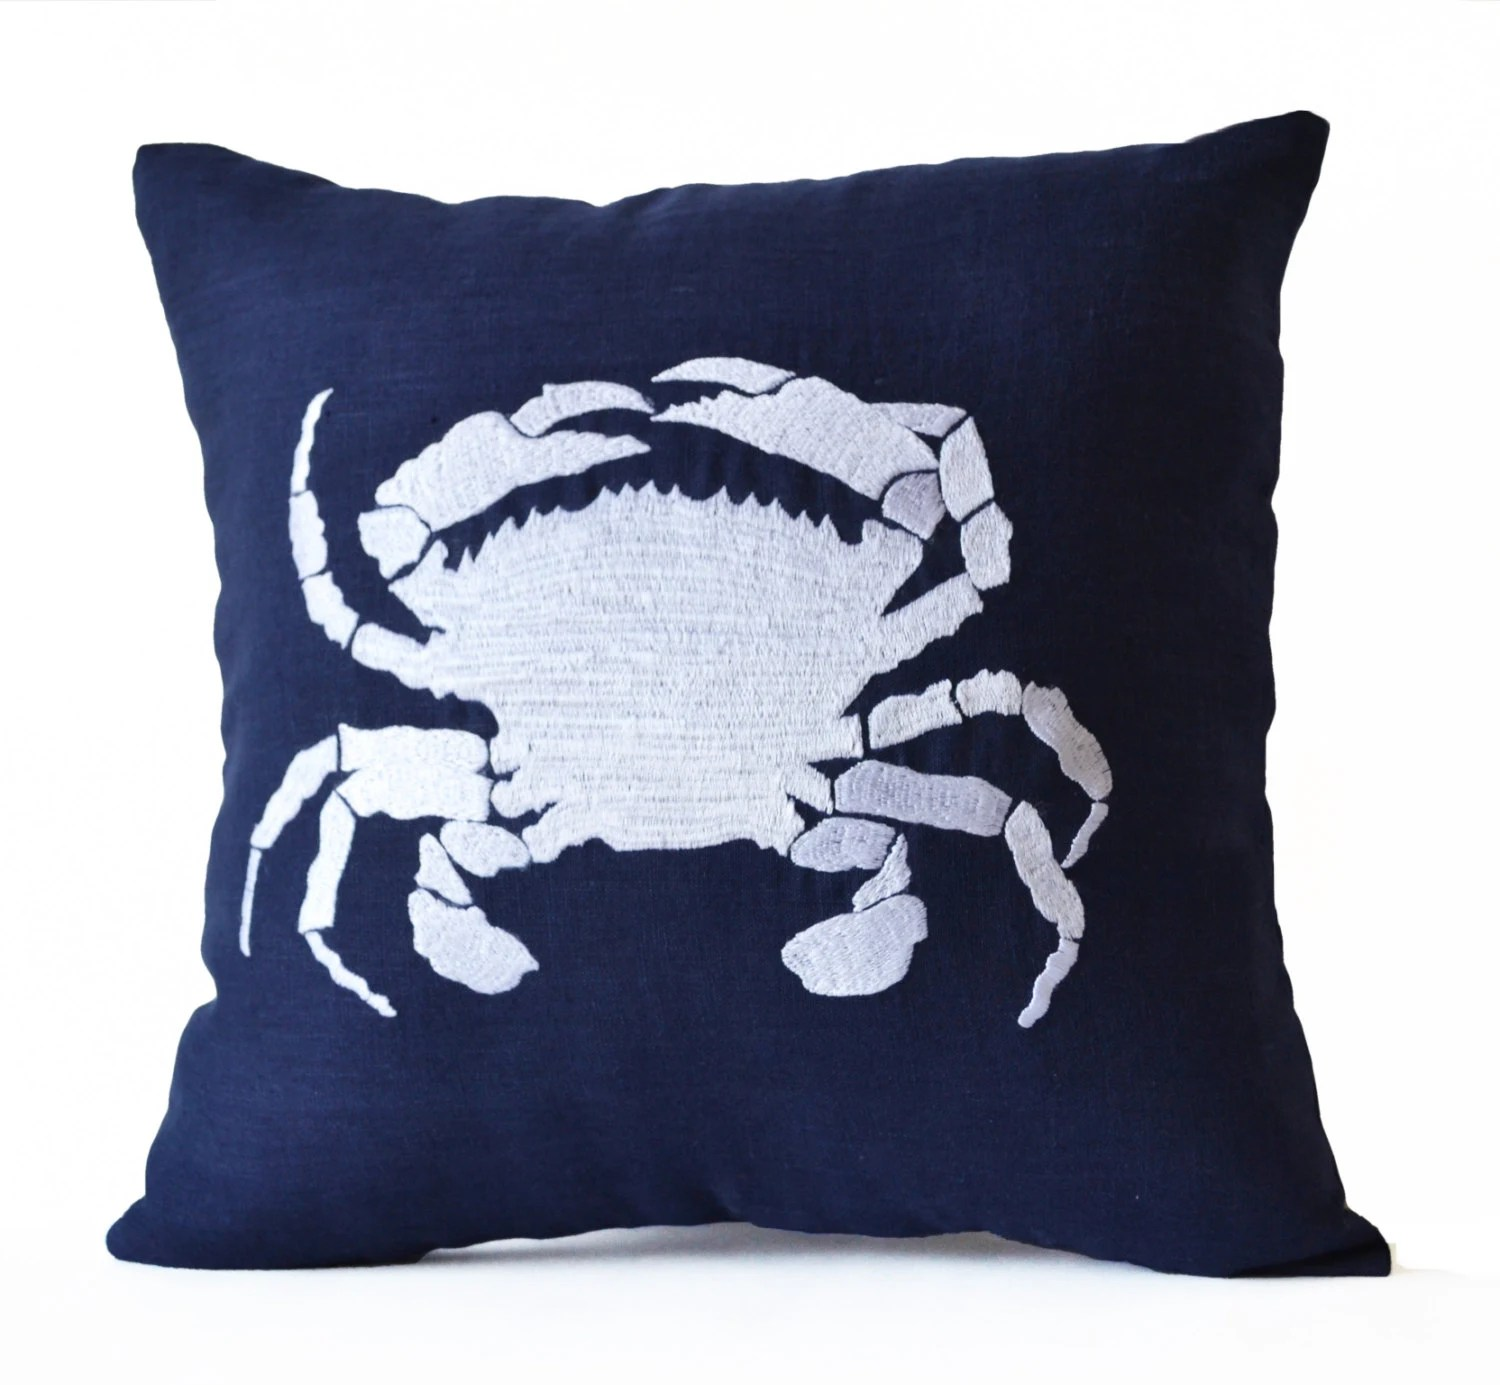 Best Navy Blue Throw Pillow Case Beach Decor Nautical Pillows This Month